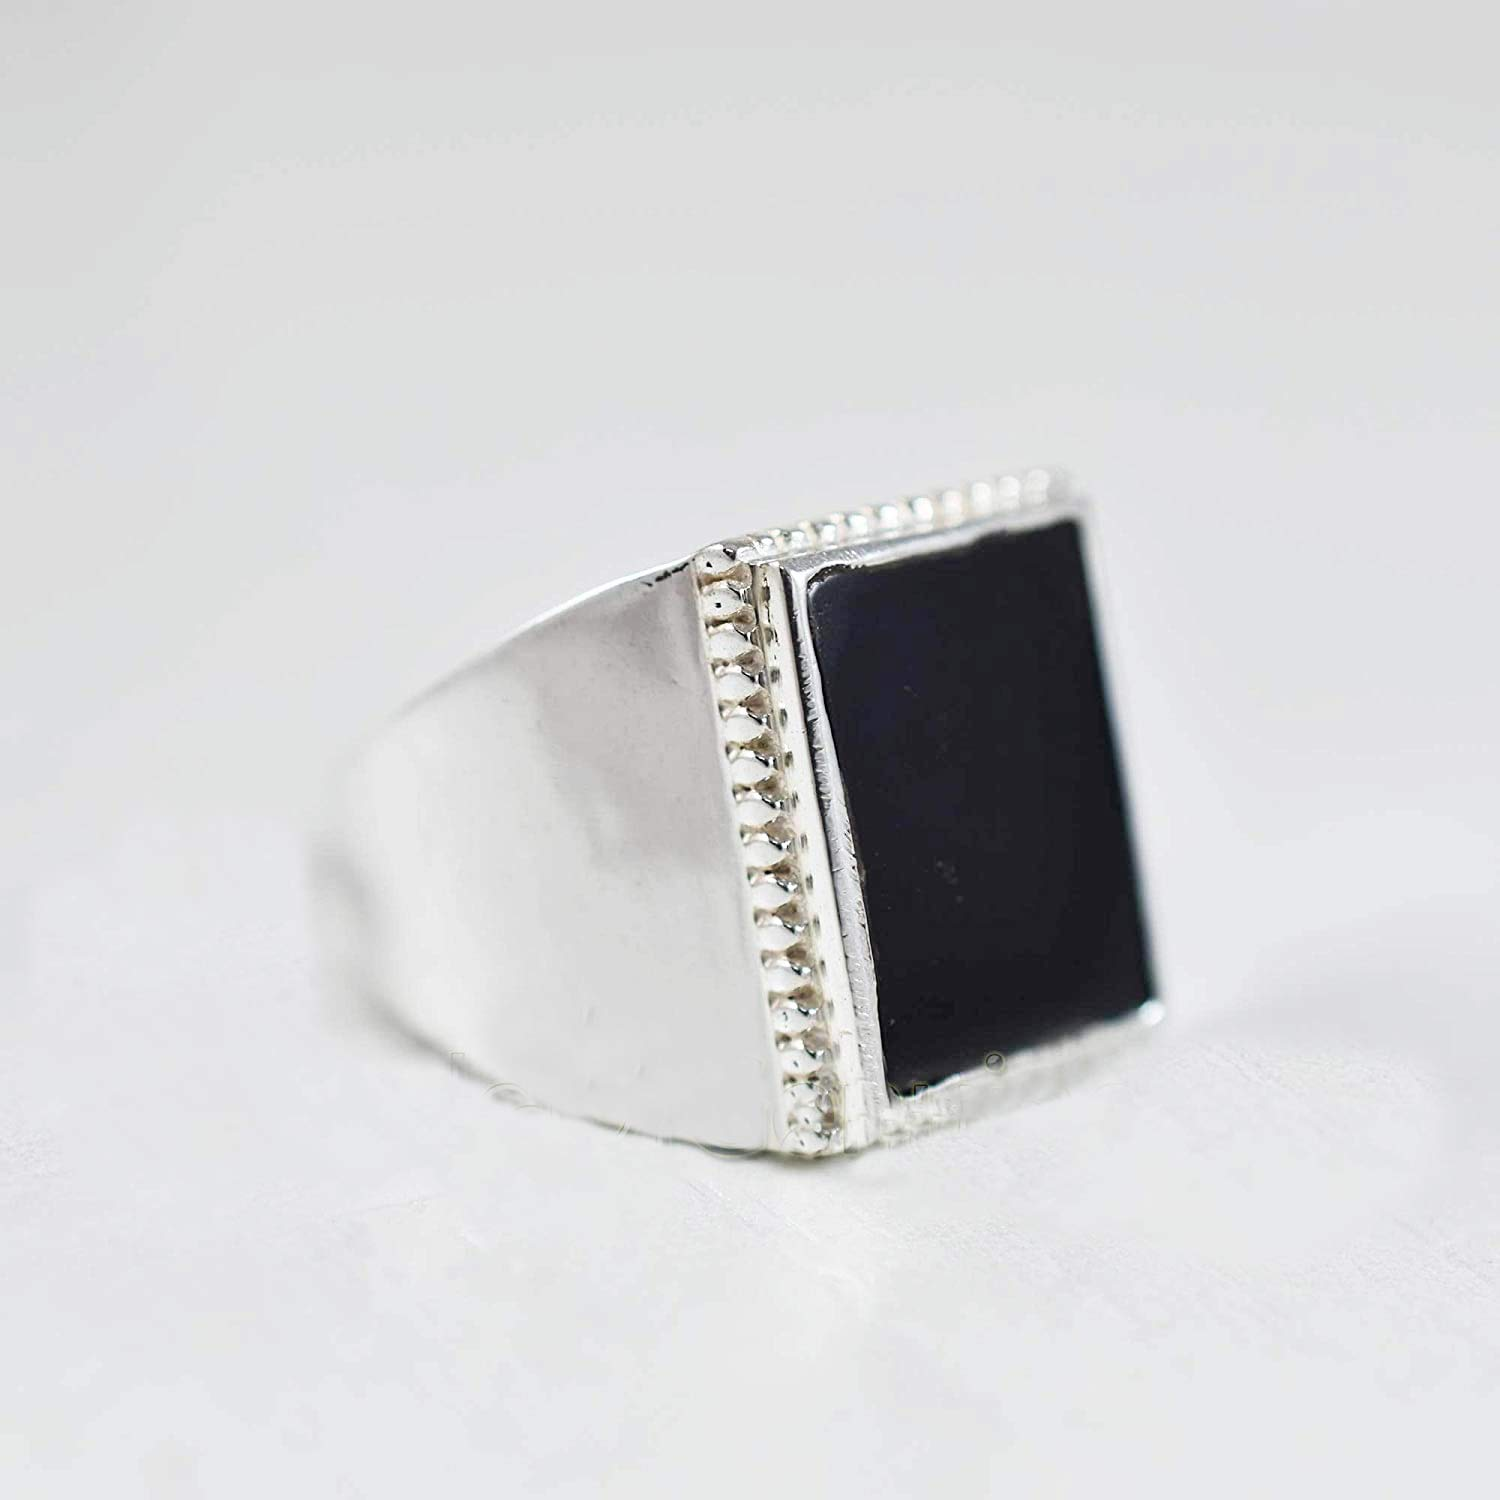 Seattle Mall Black Onyx Reservation Silver Ring Solid Sterling 925K Rectang Flat